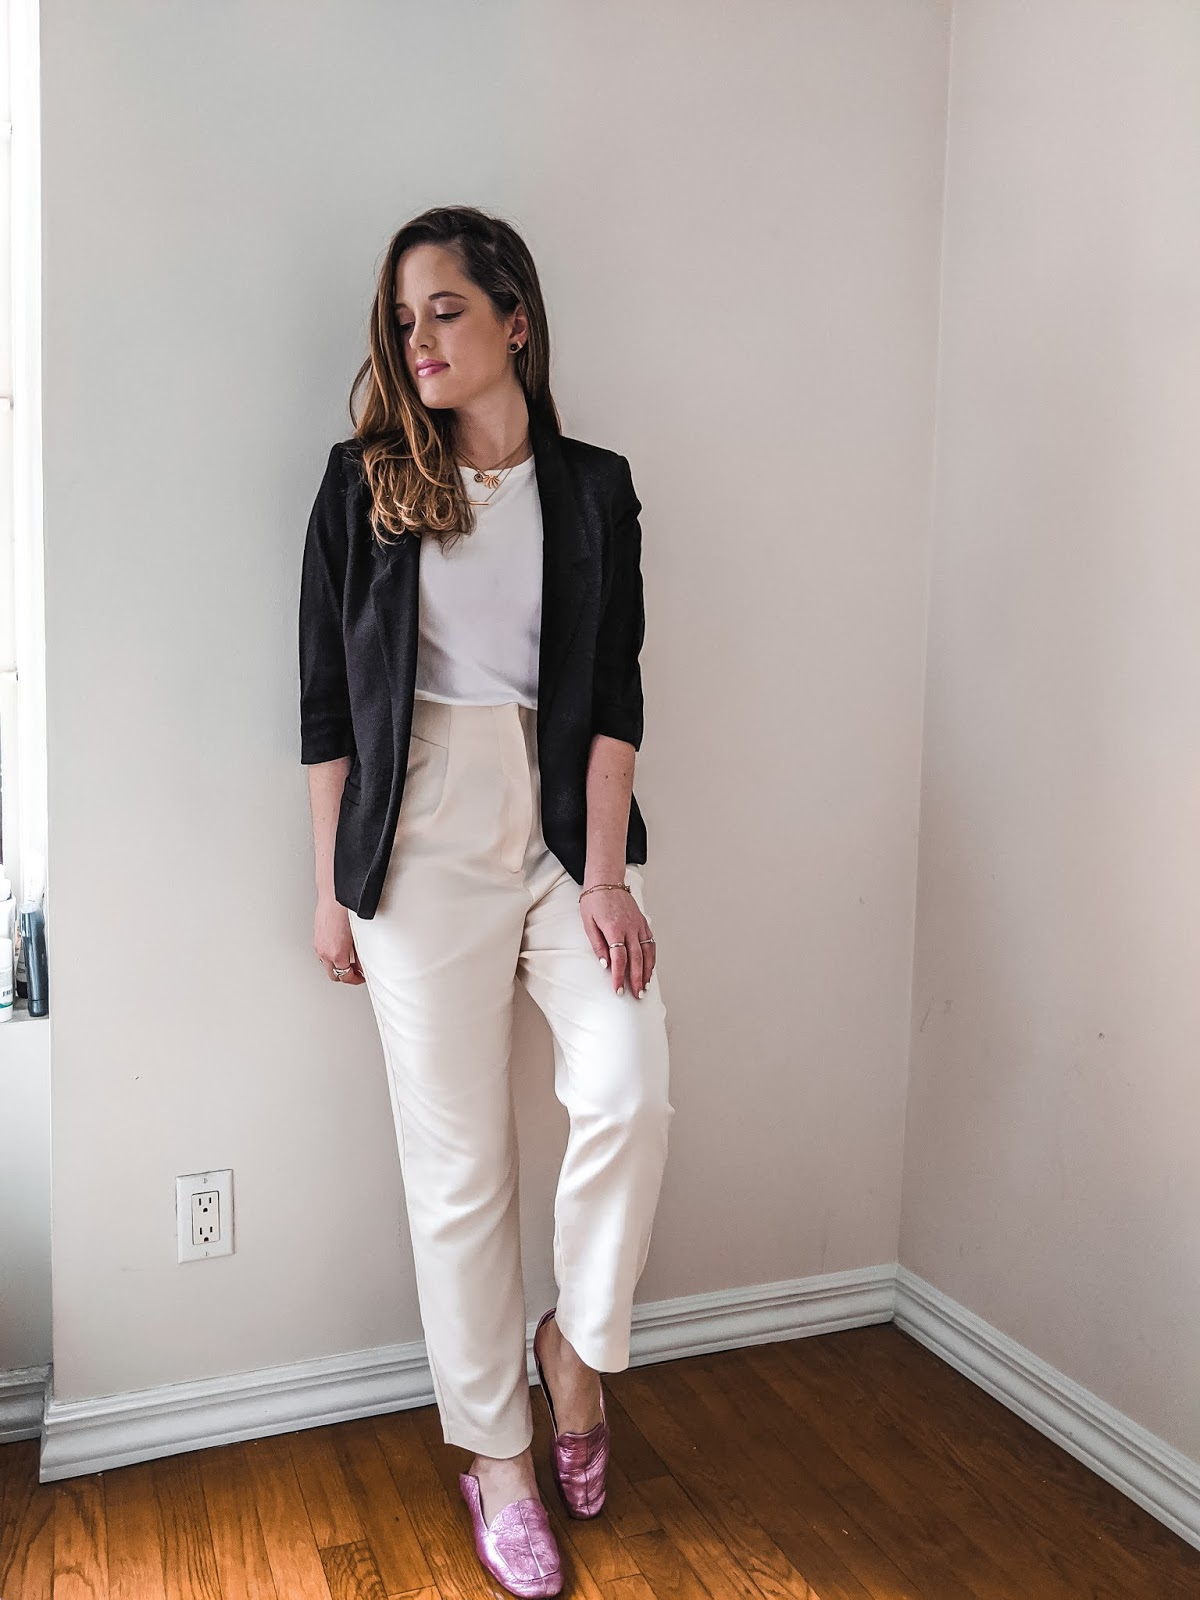 Nyc fashion blogger Kathleen Harper's indoor photo shoot.